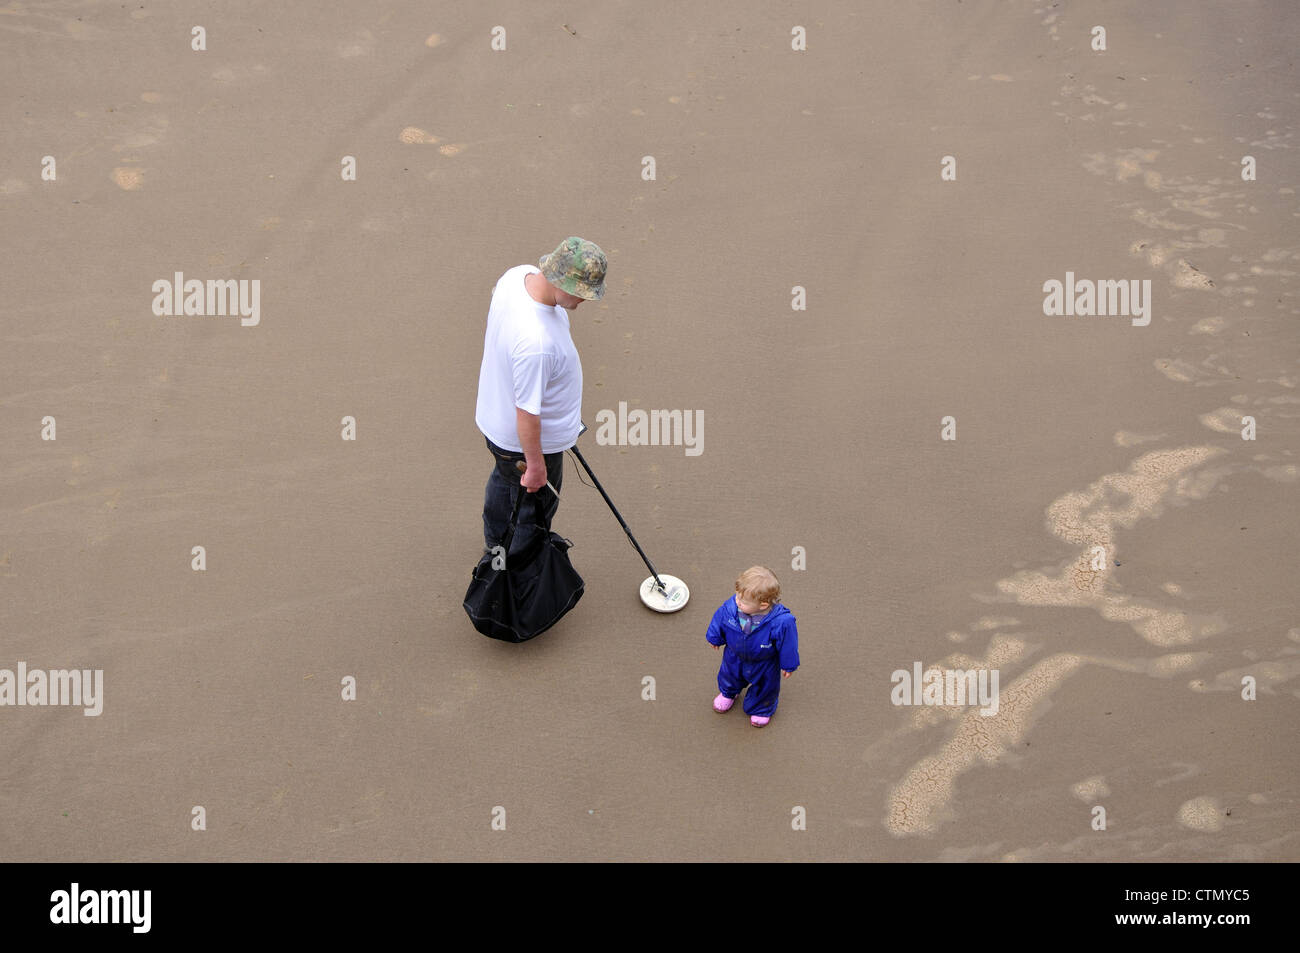 man searching beach with a metal detector, Whitby, North Yorkshire, England, UK - Stock Image